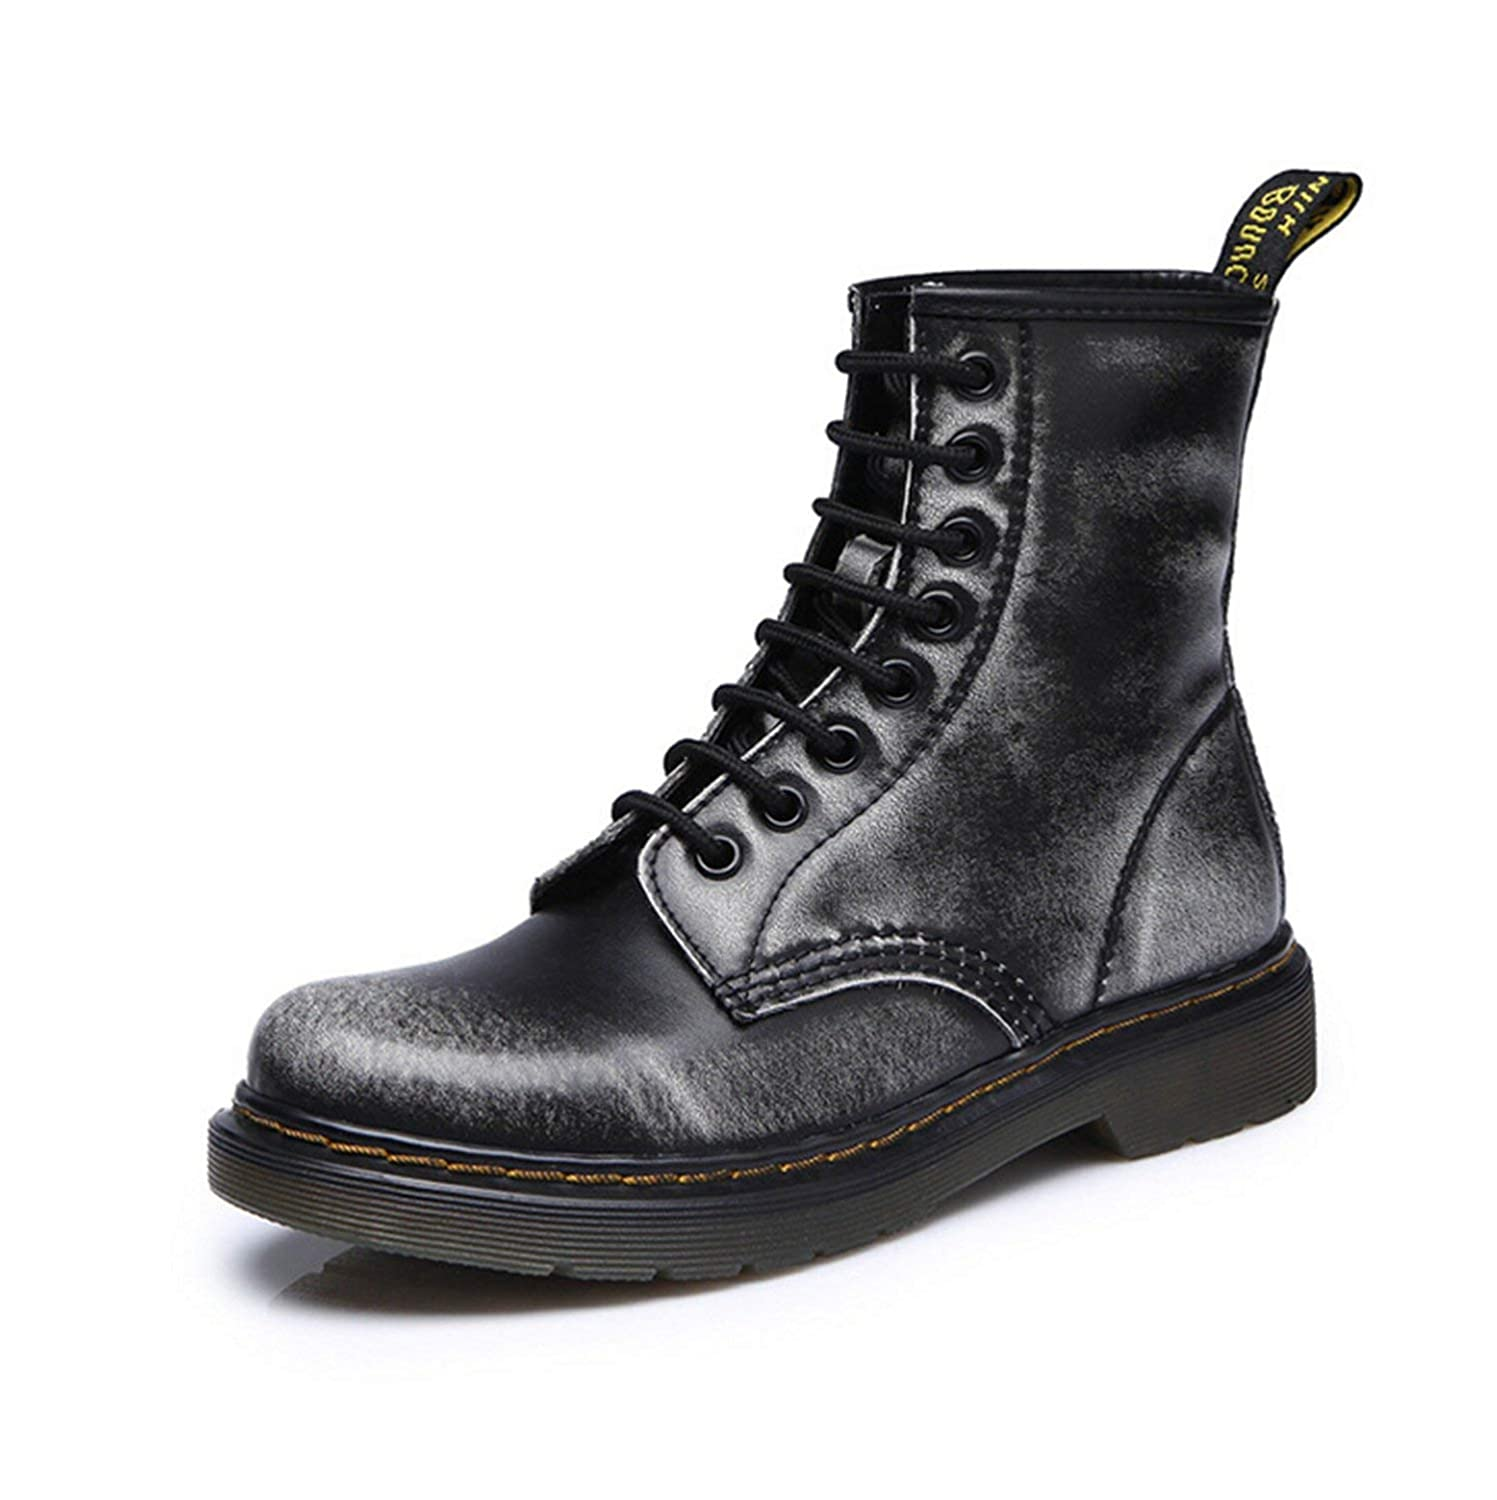 2019 Women Boots Dr Martin Boots Split Leather Shoes High Top Motorcycle Autumn Winter Shoe Woman Snow Boots ST50,Finished red,35